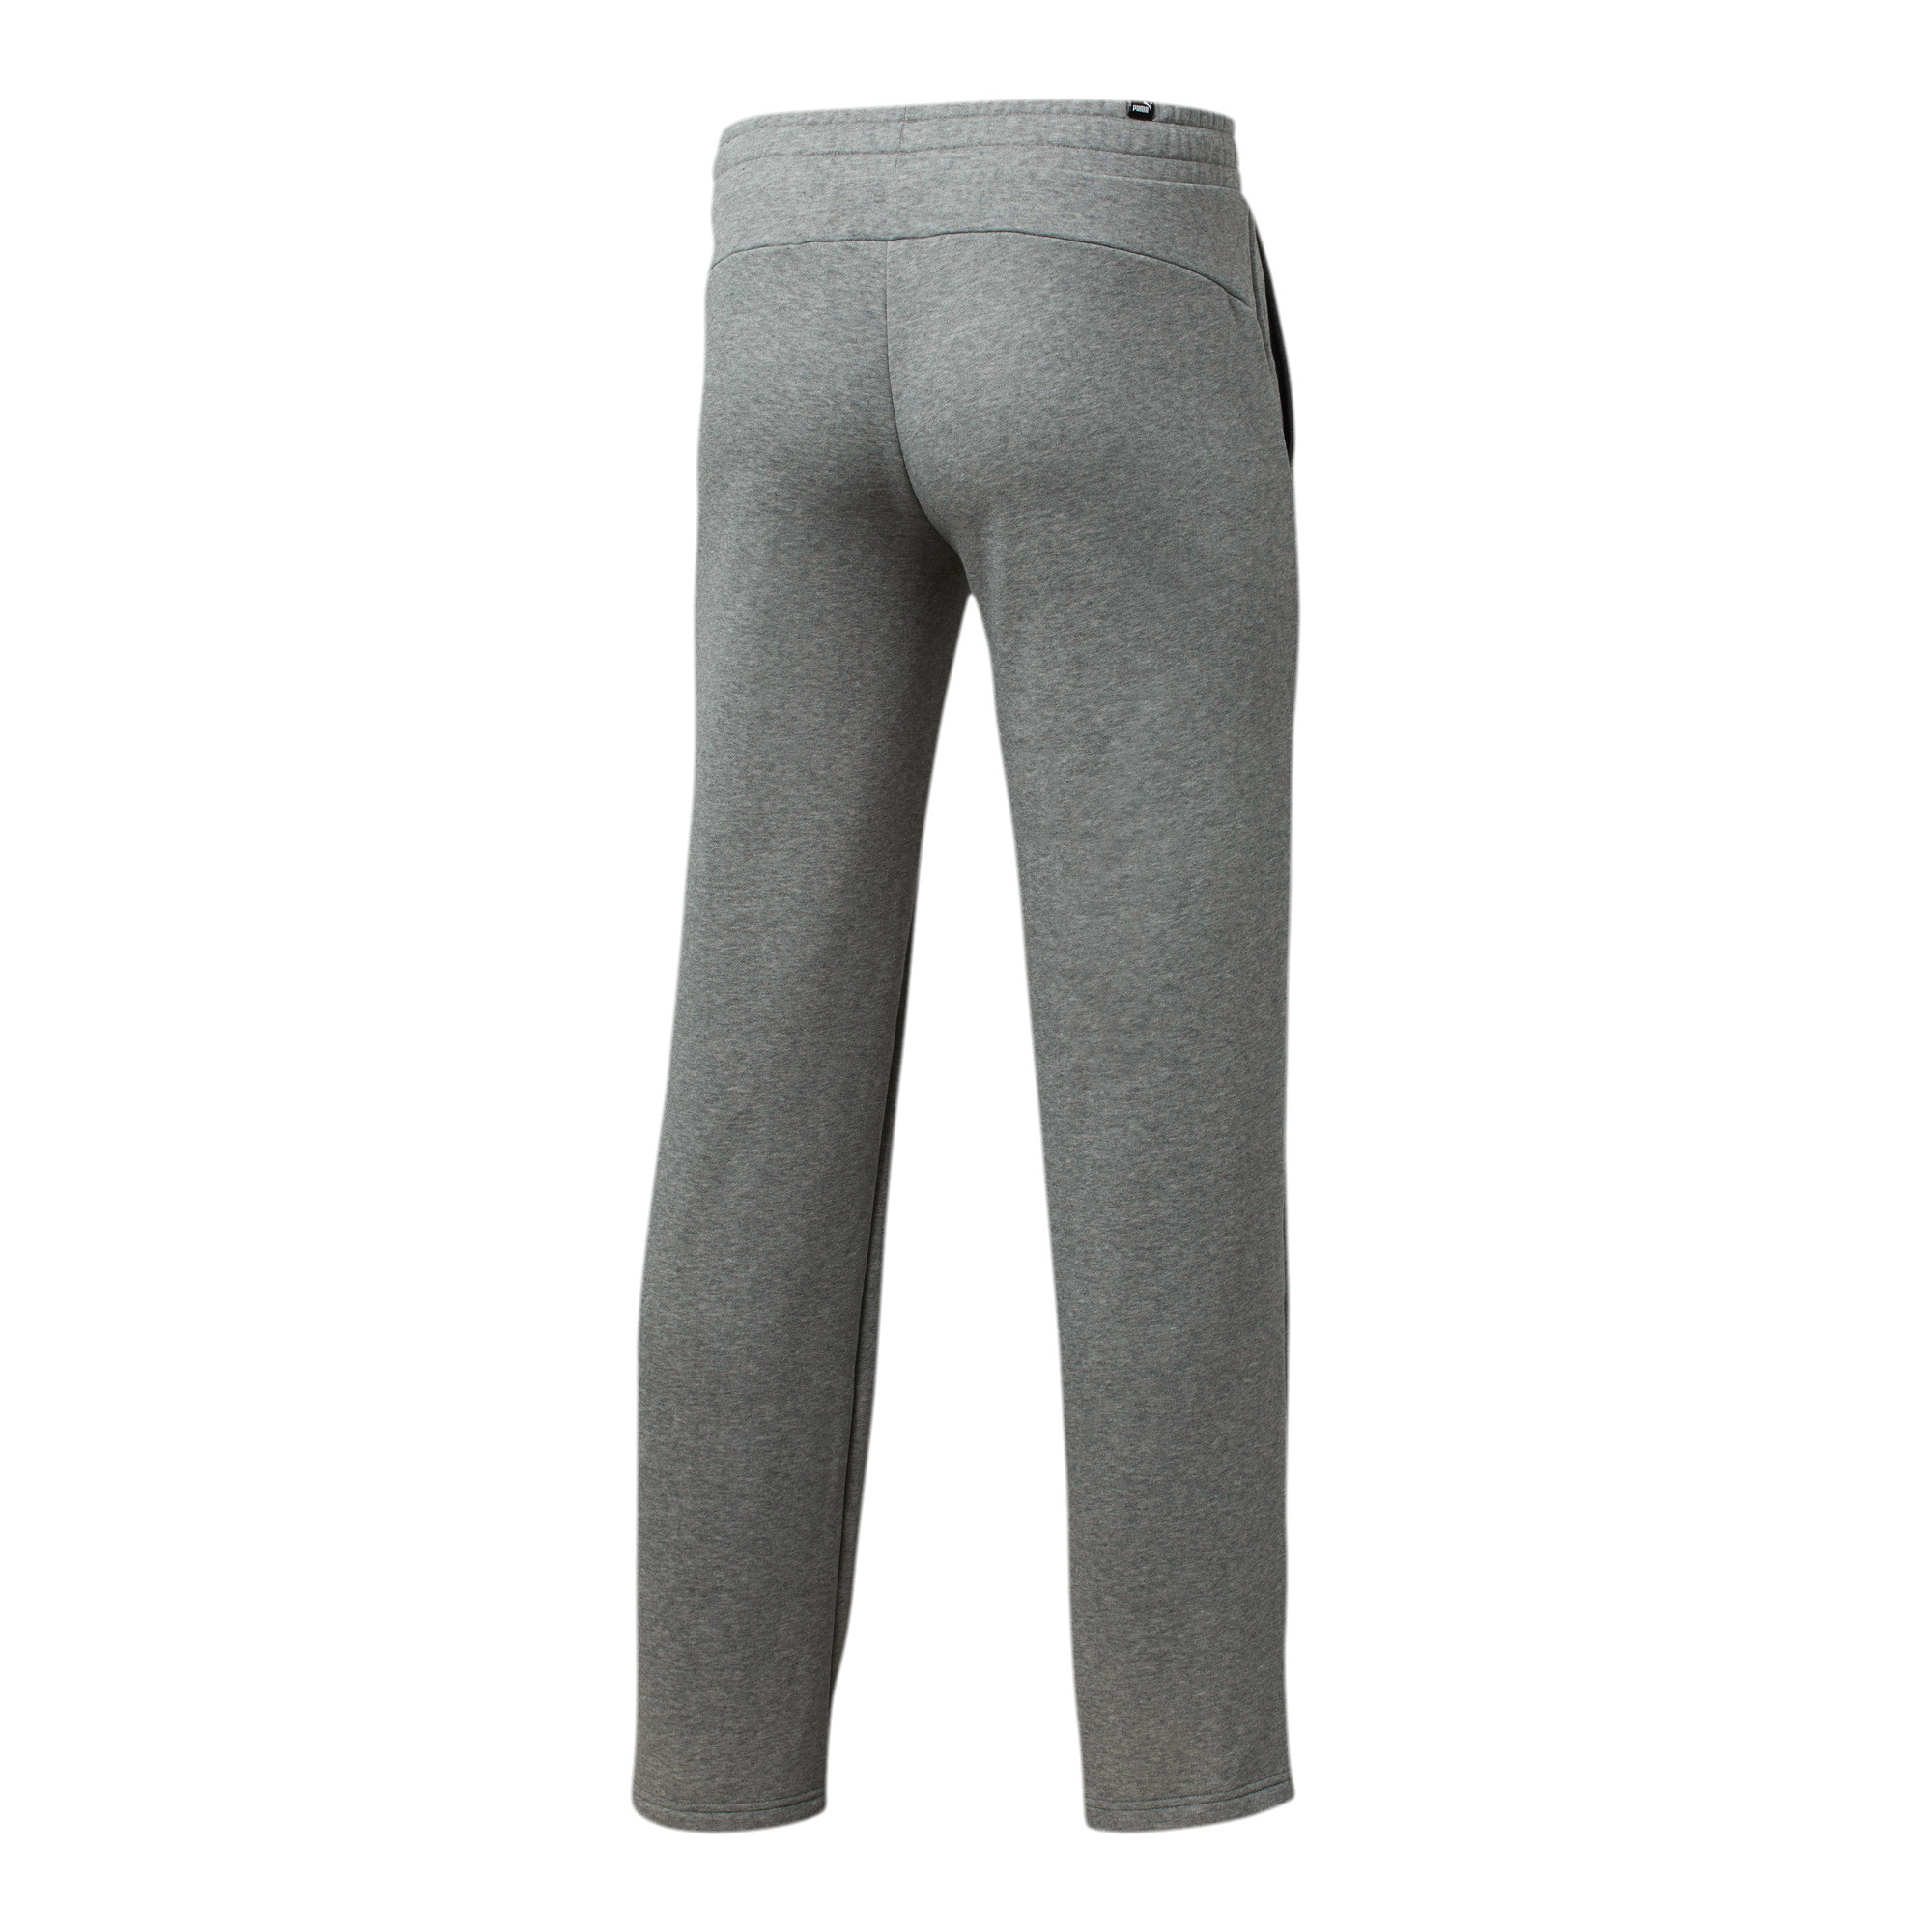 PUMA-Essentials-Men-039-s-Fleece-Pants-Men-Knitted-Pants-Basics thumbnail 8